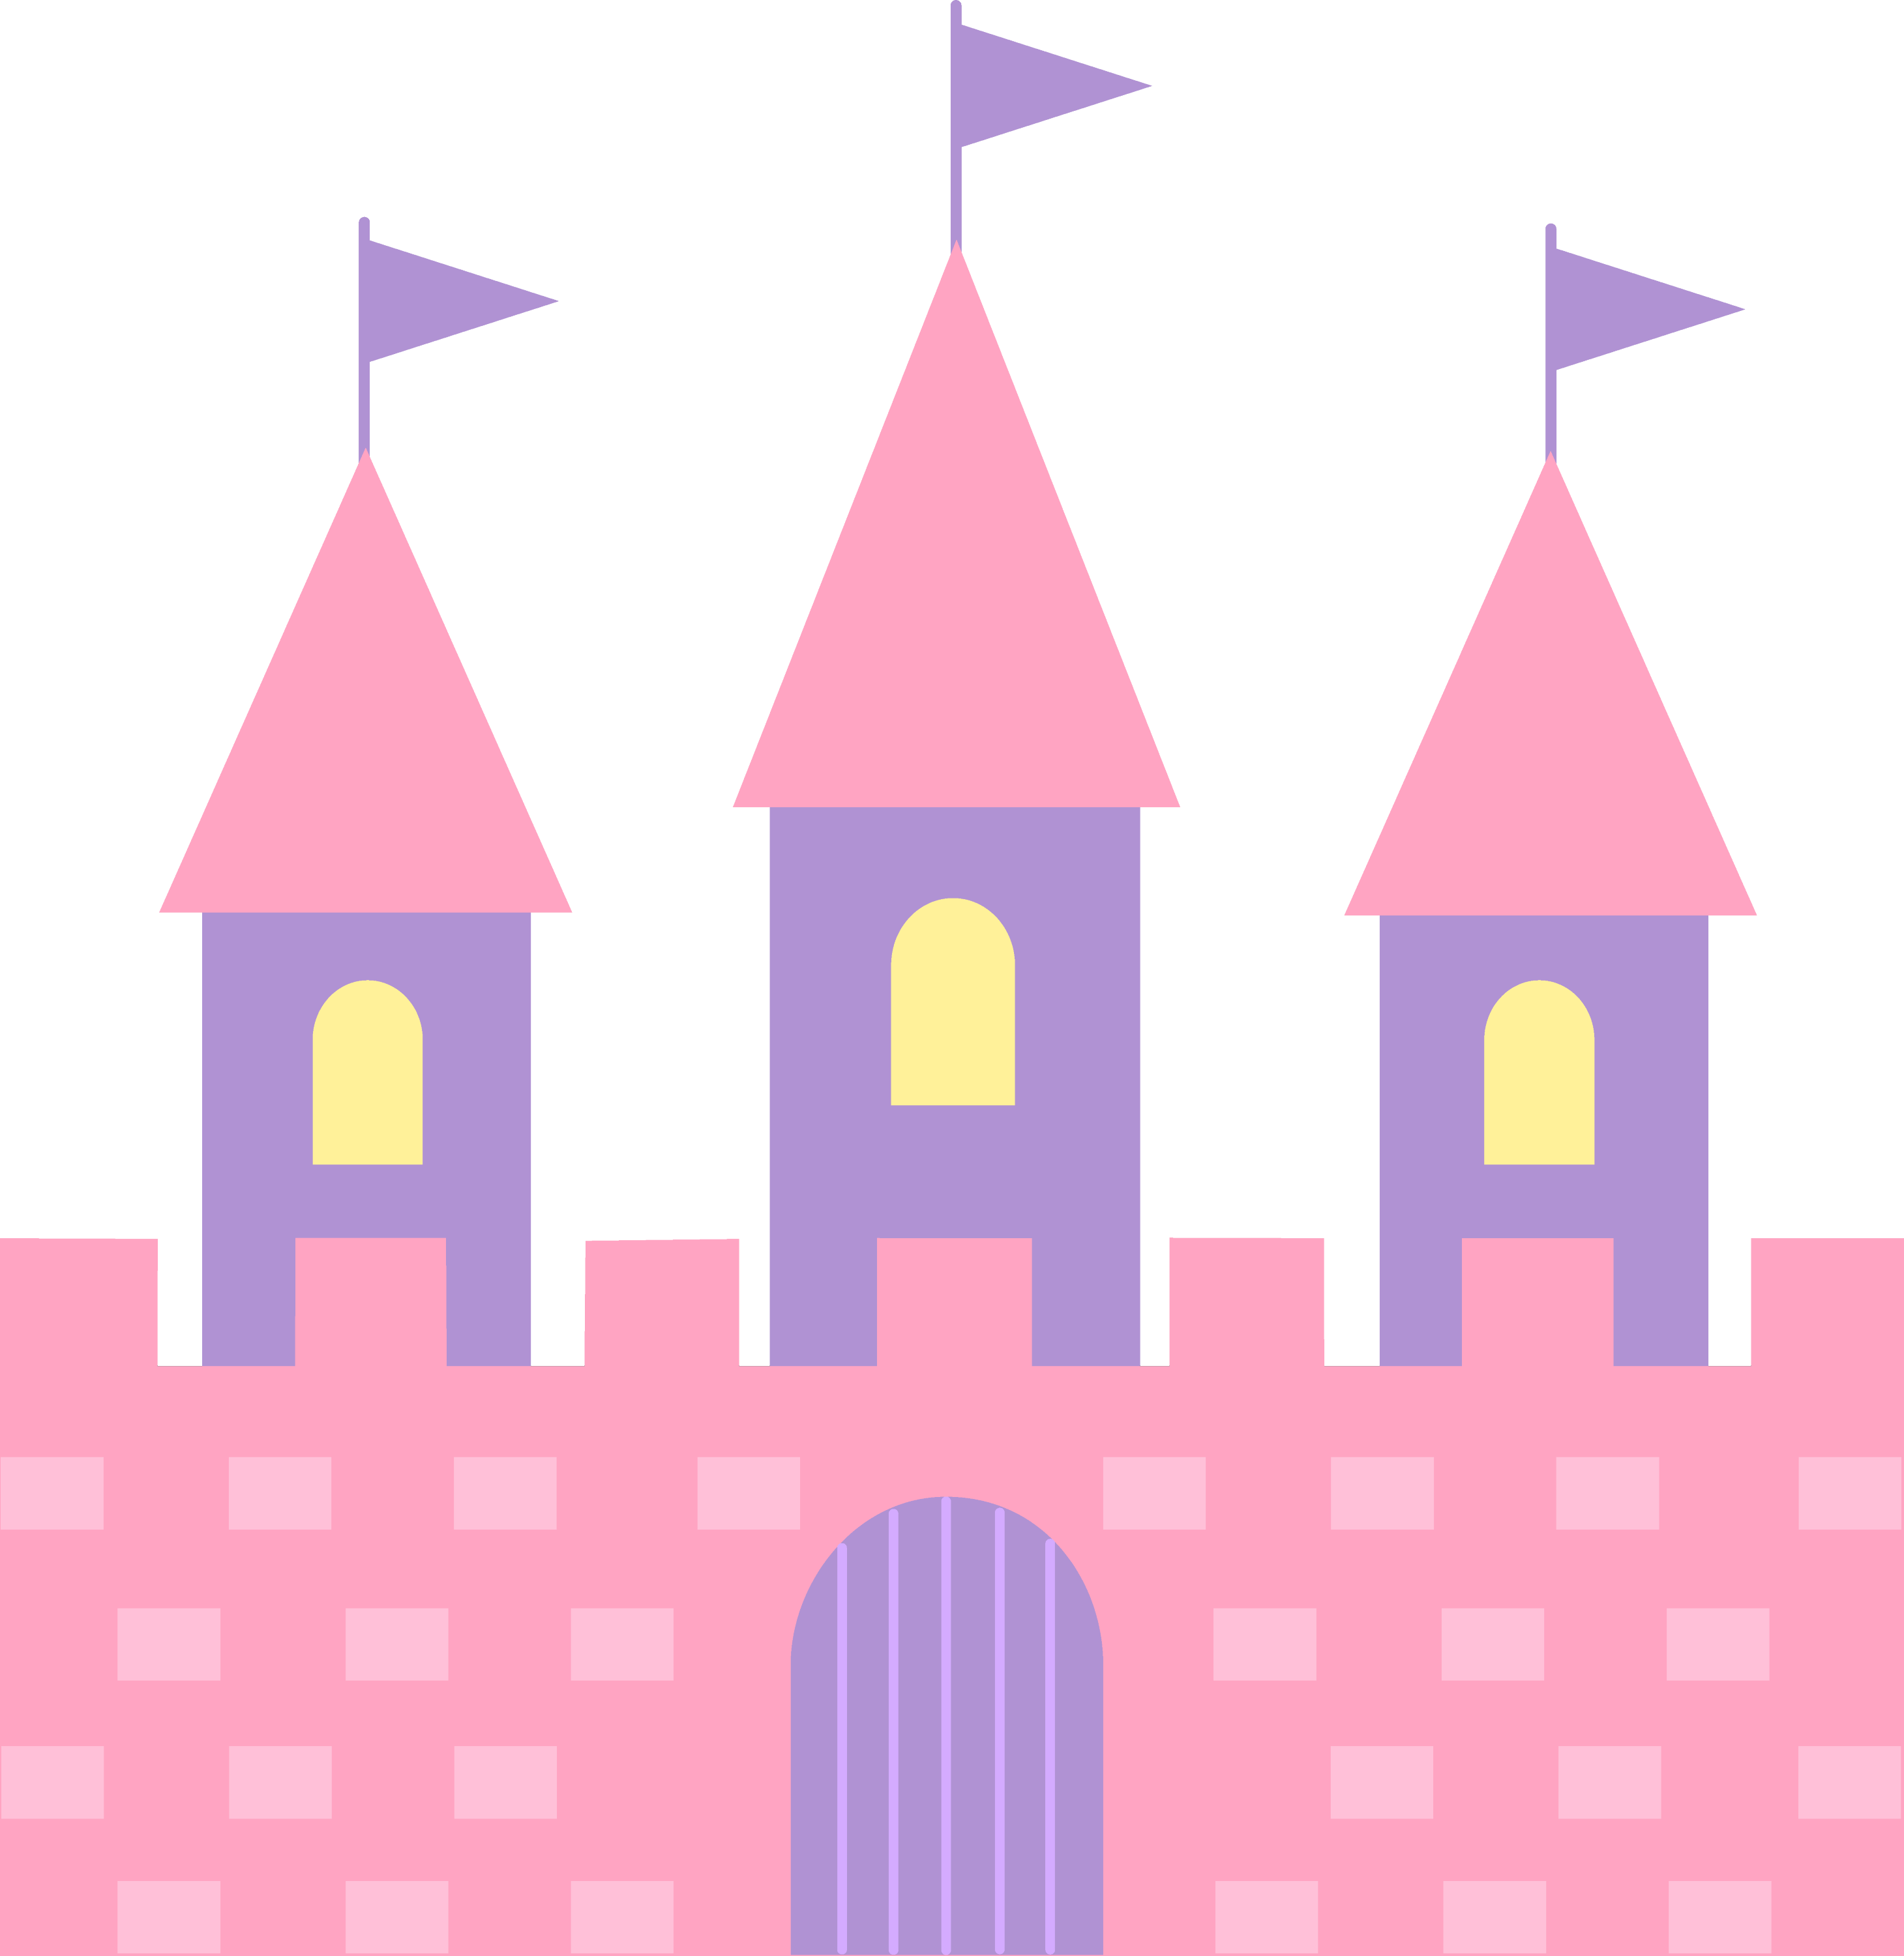 Cute pink princess castle